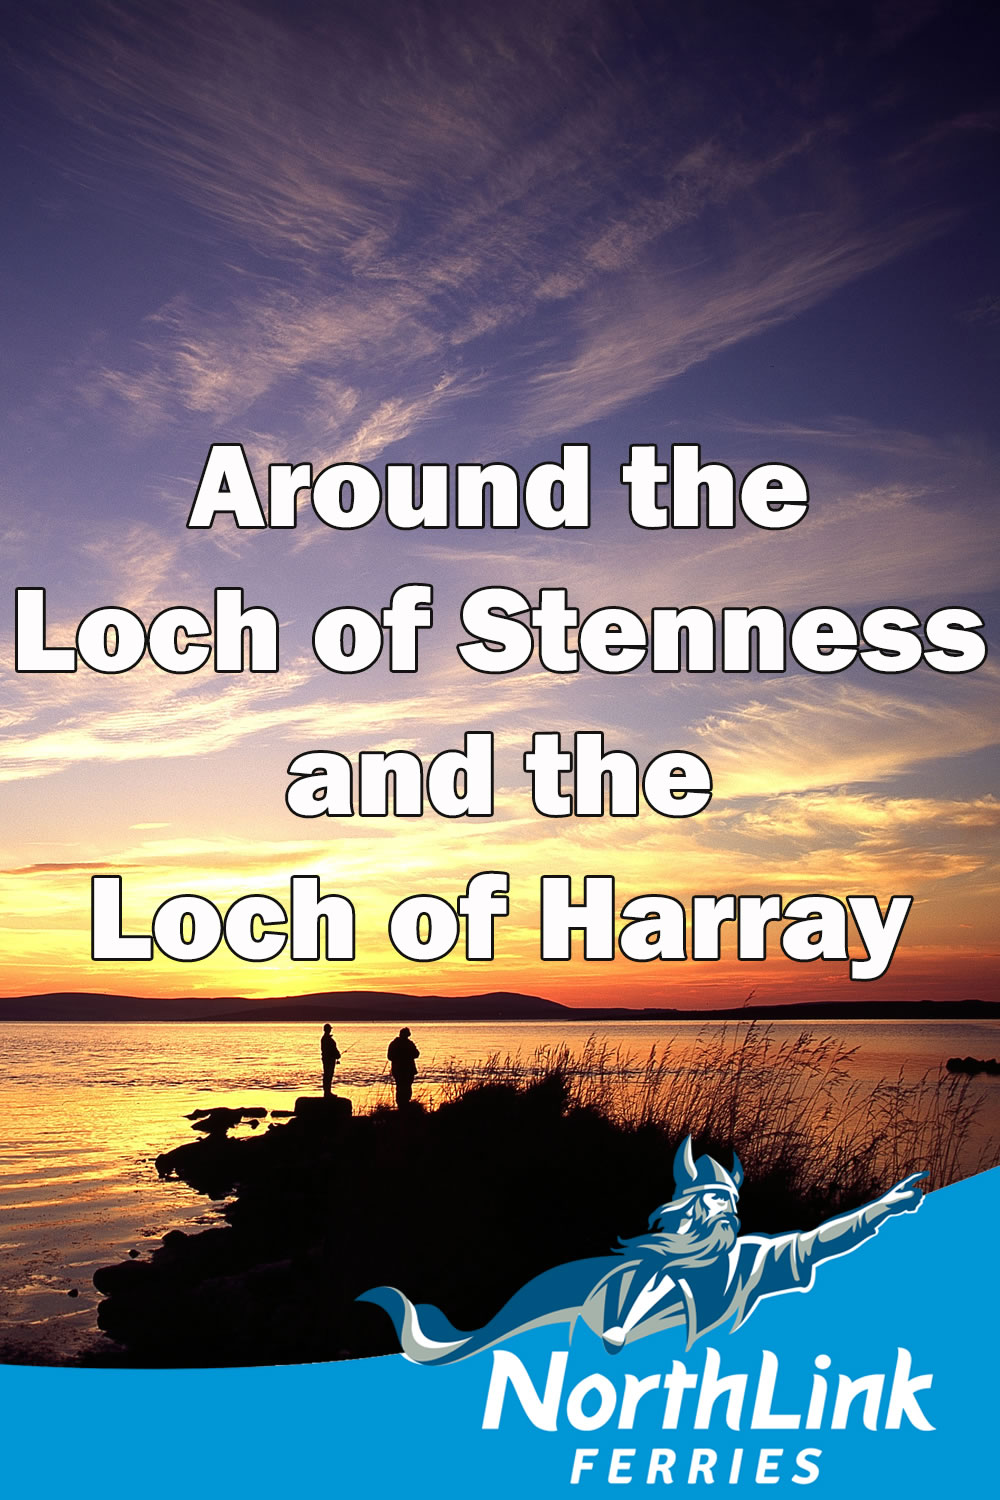 Around the Loch of Stenness and the Loch of Harray